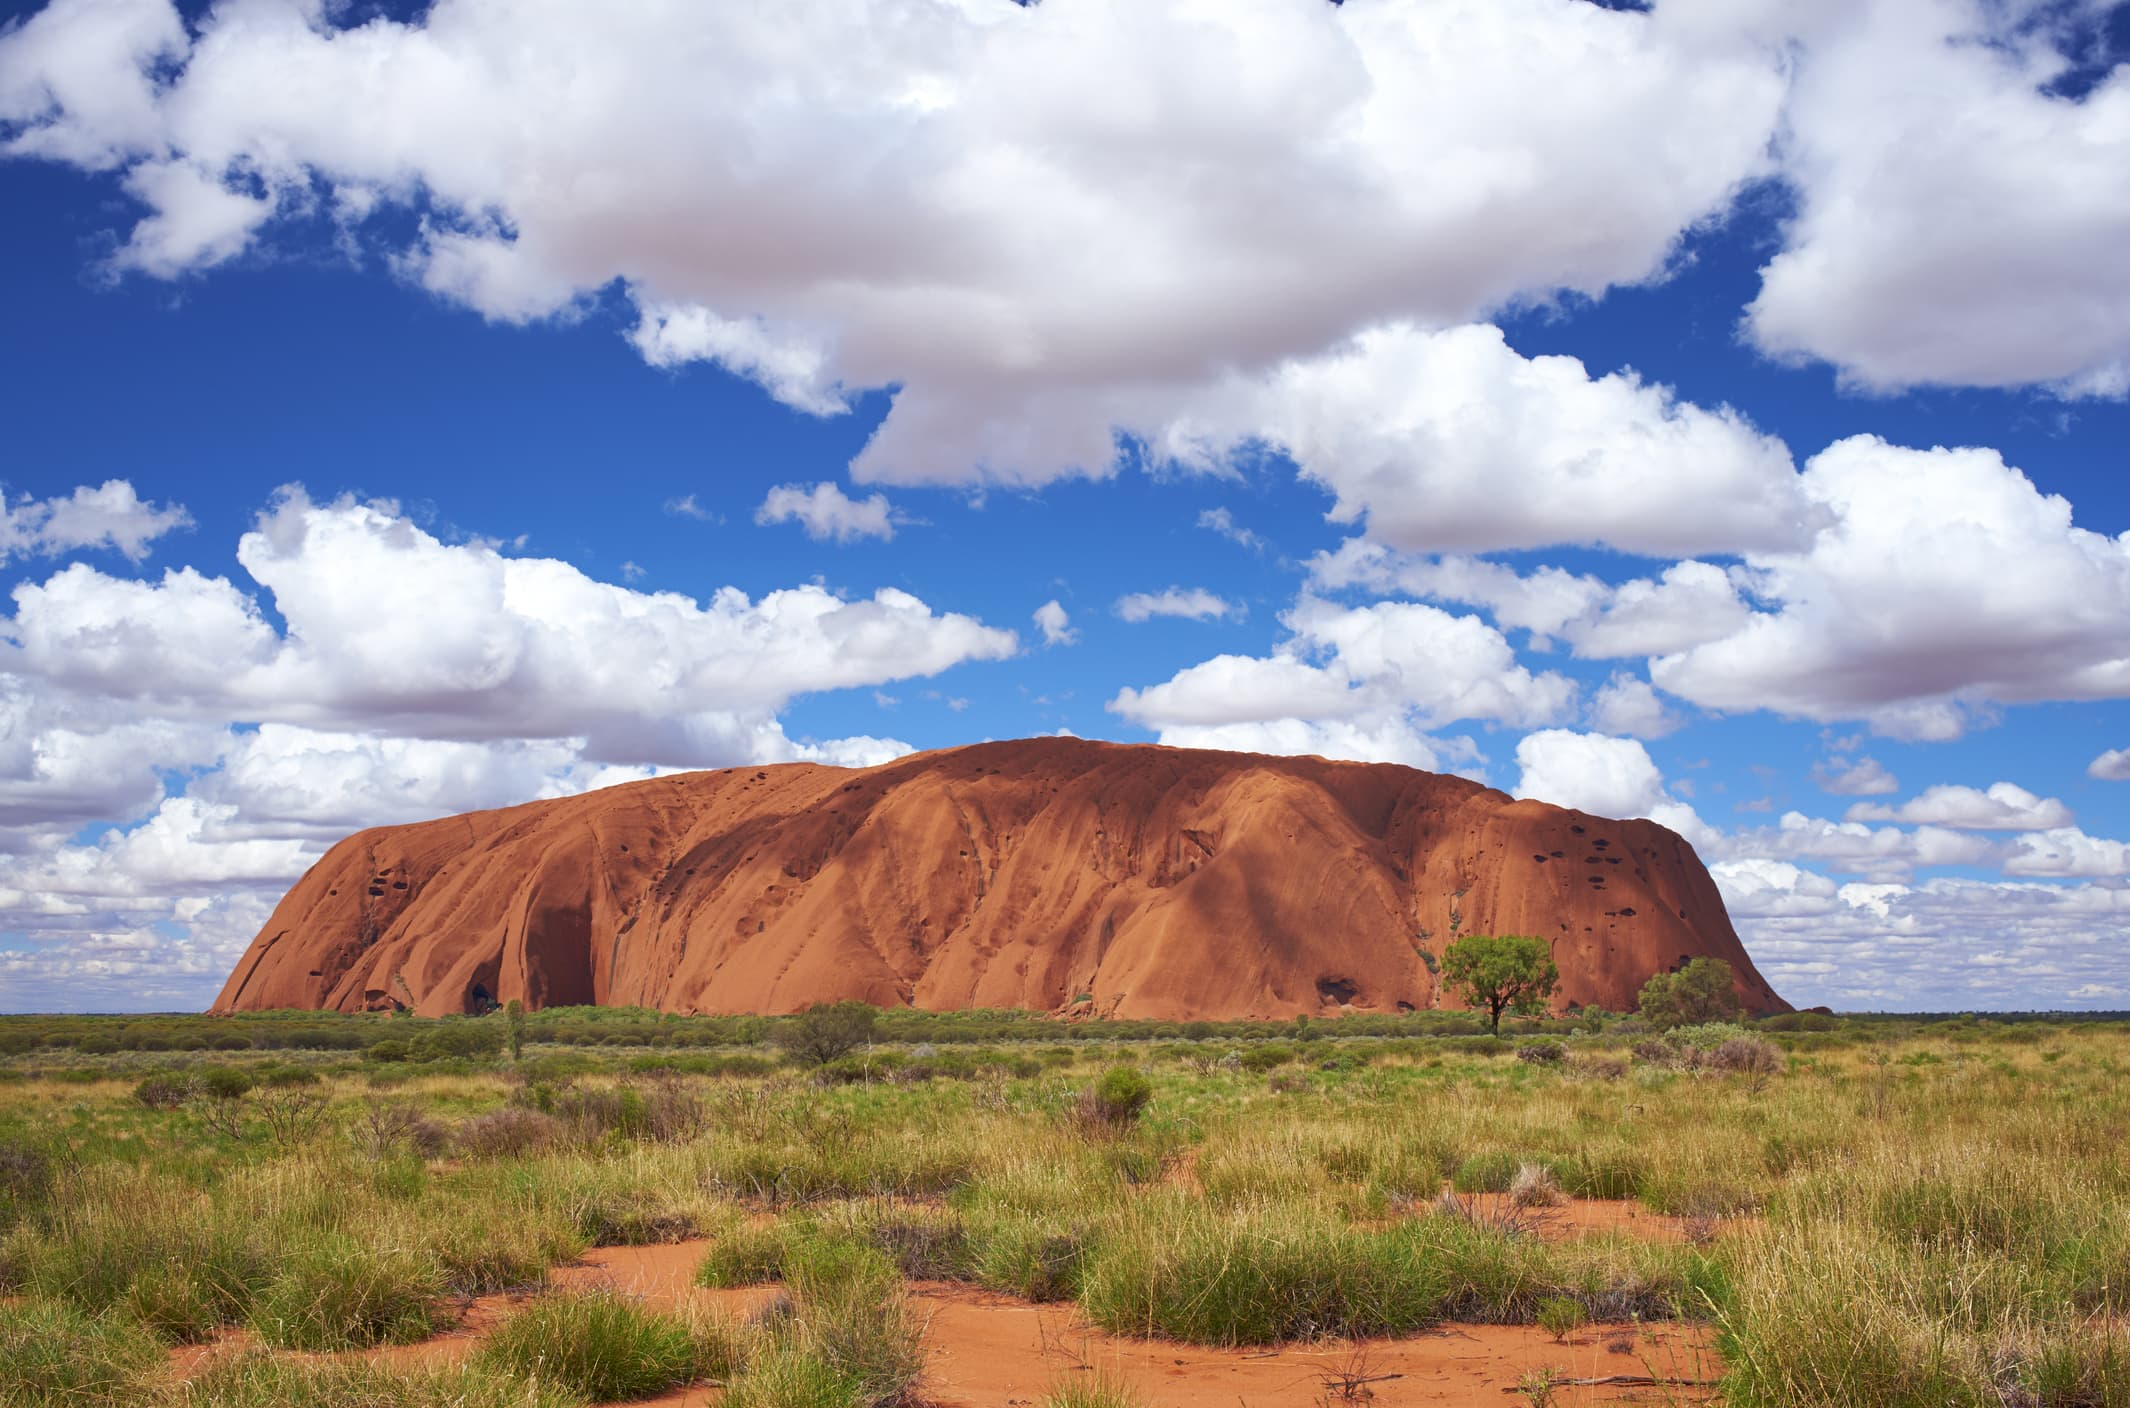 Four things to do at Australia's Uluru monolith — besides climb it